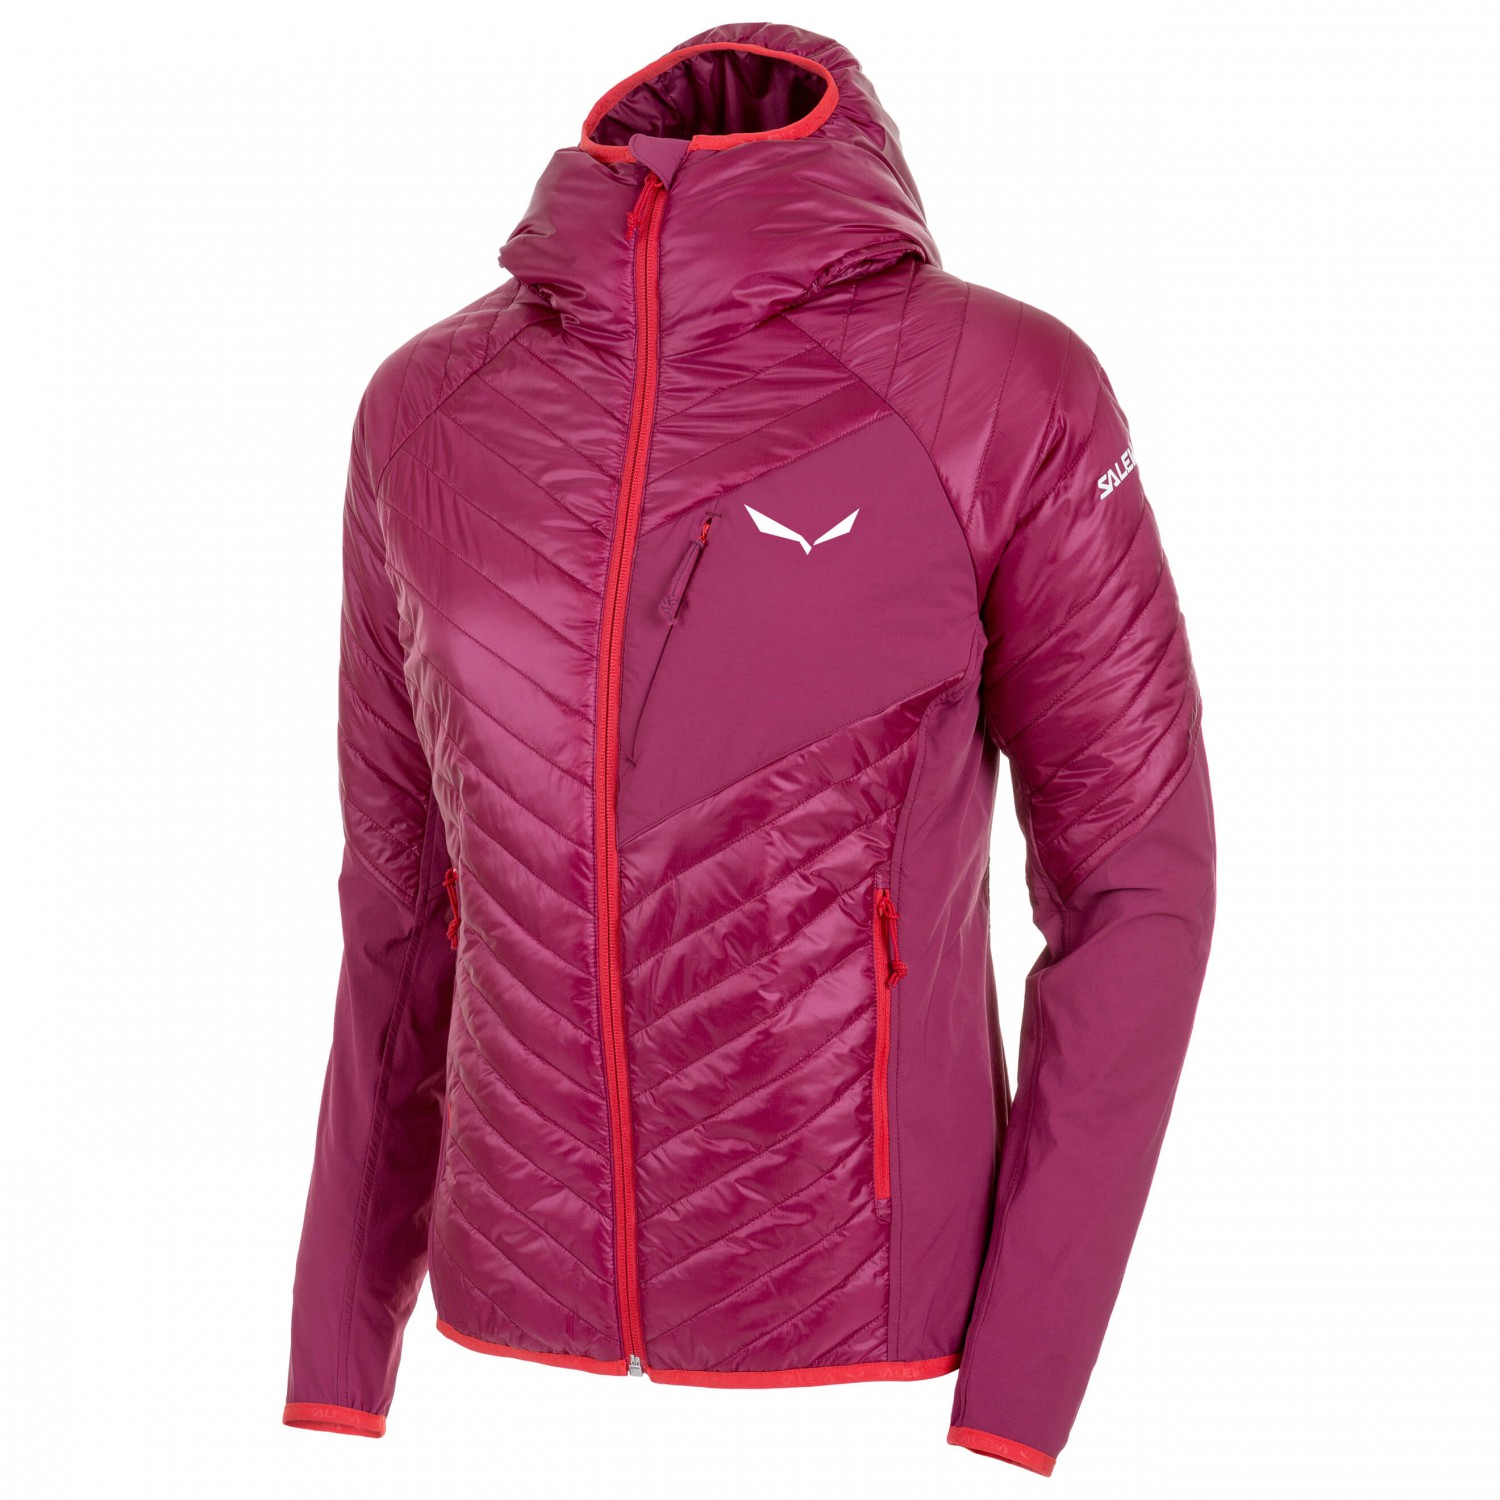 uk availability 570bc f5da2 Salewa - Women's Ortles Hybrid 2 Primaloft Jacket - Kunstfaserjacke